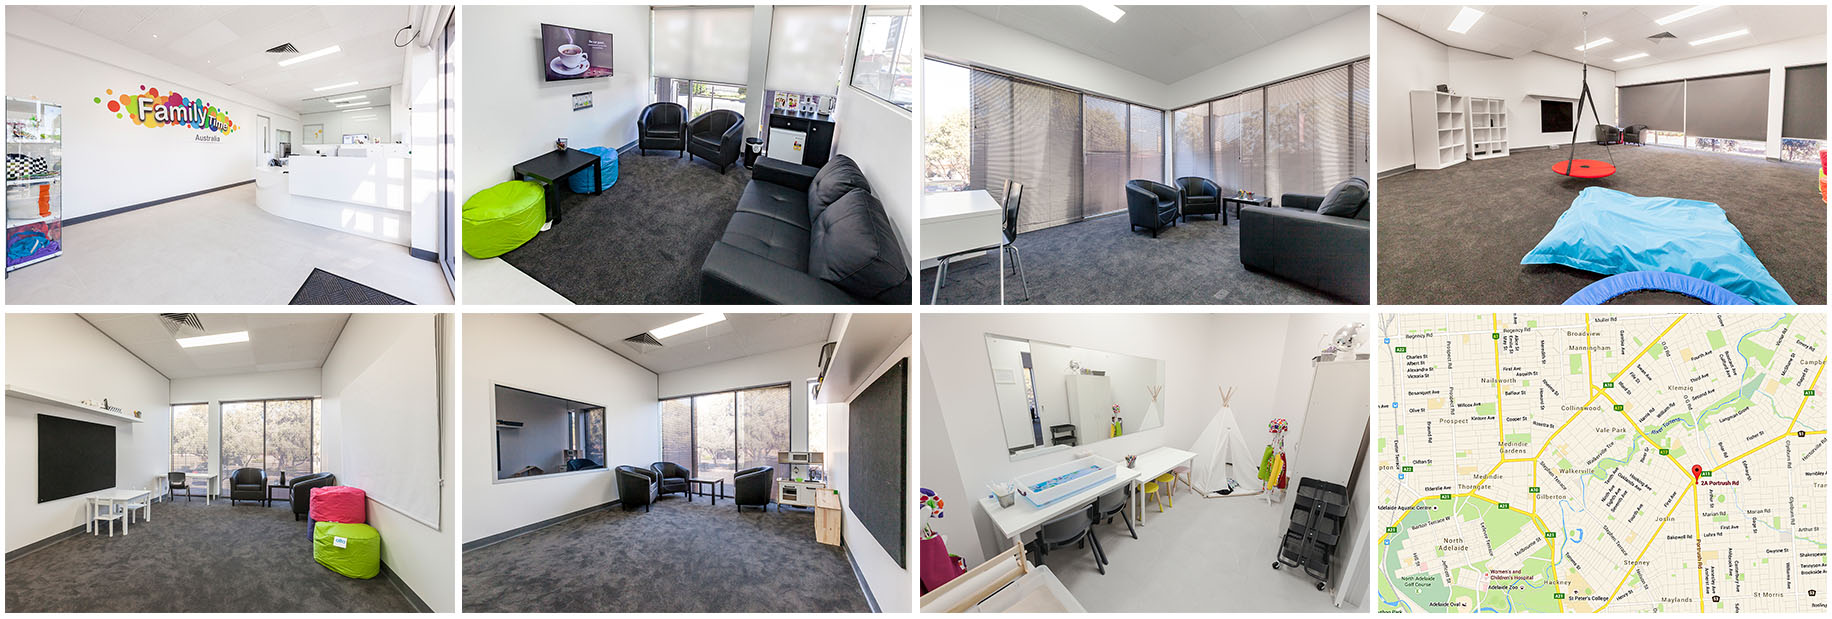 Family Time Australia Therapy rooms